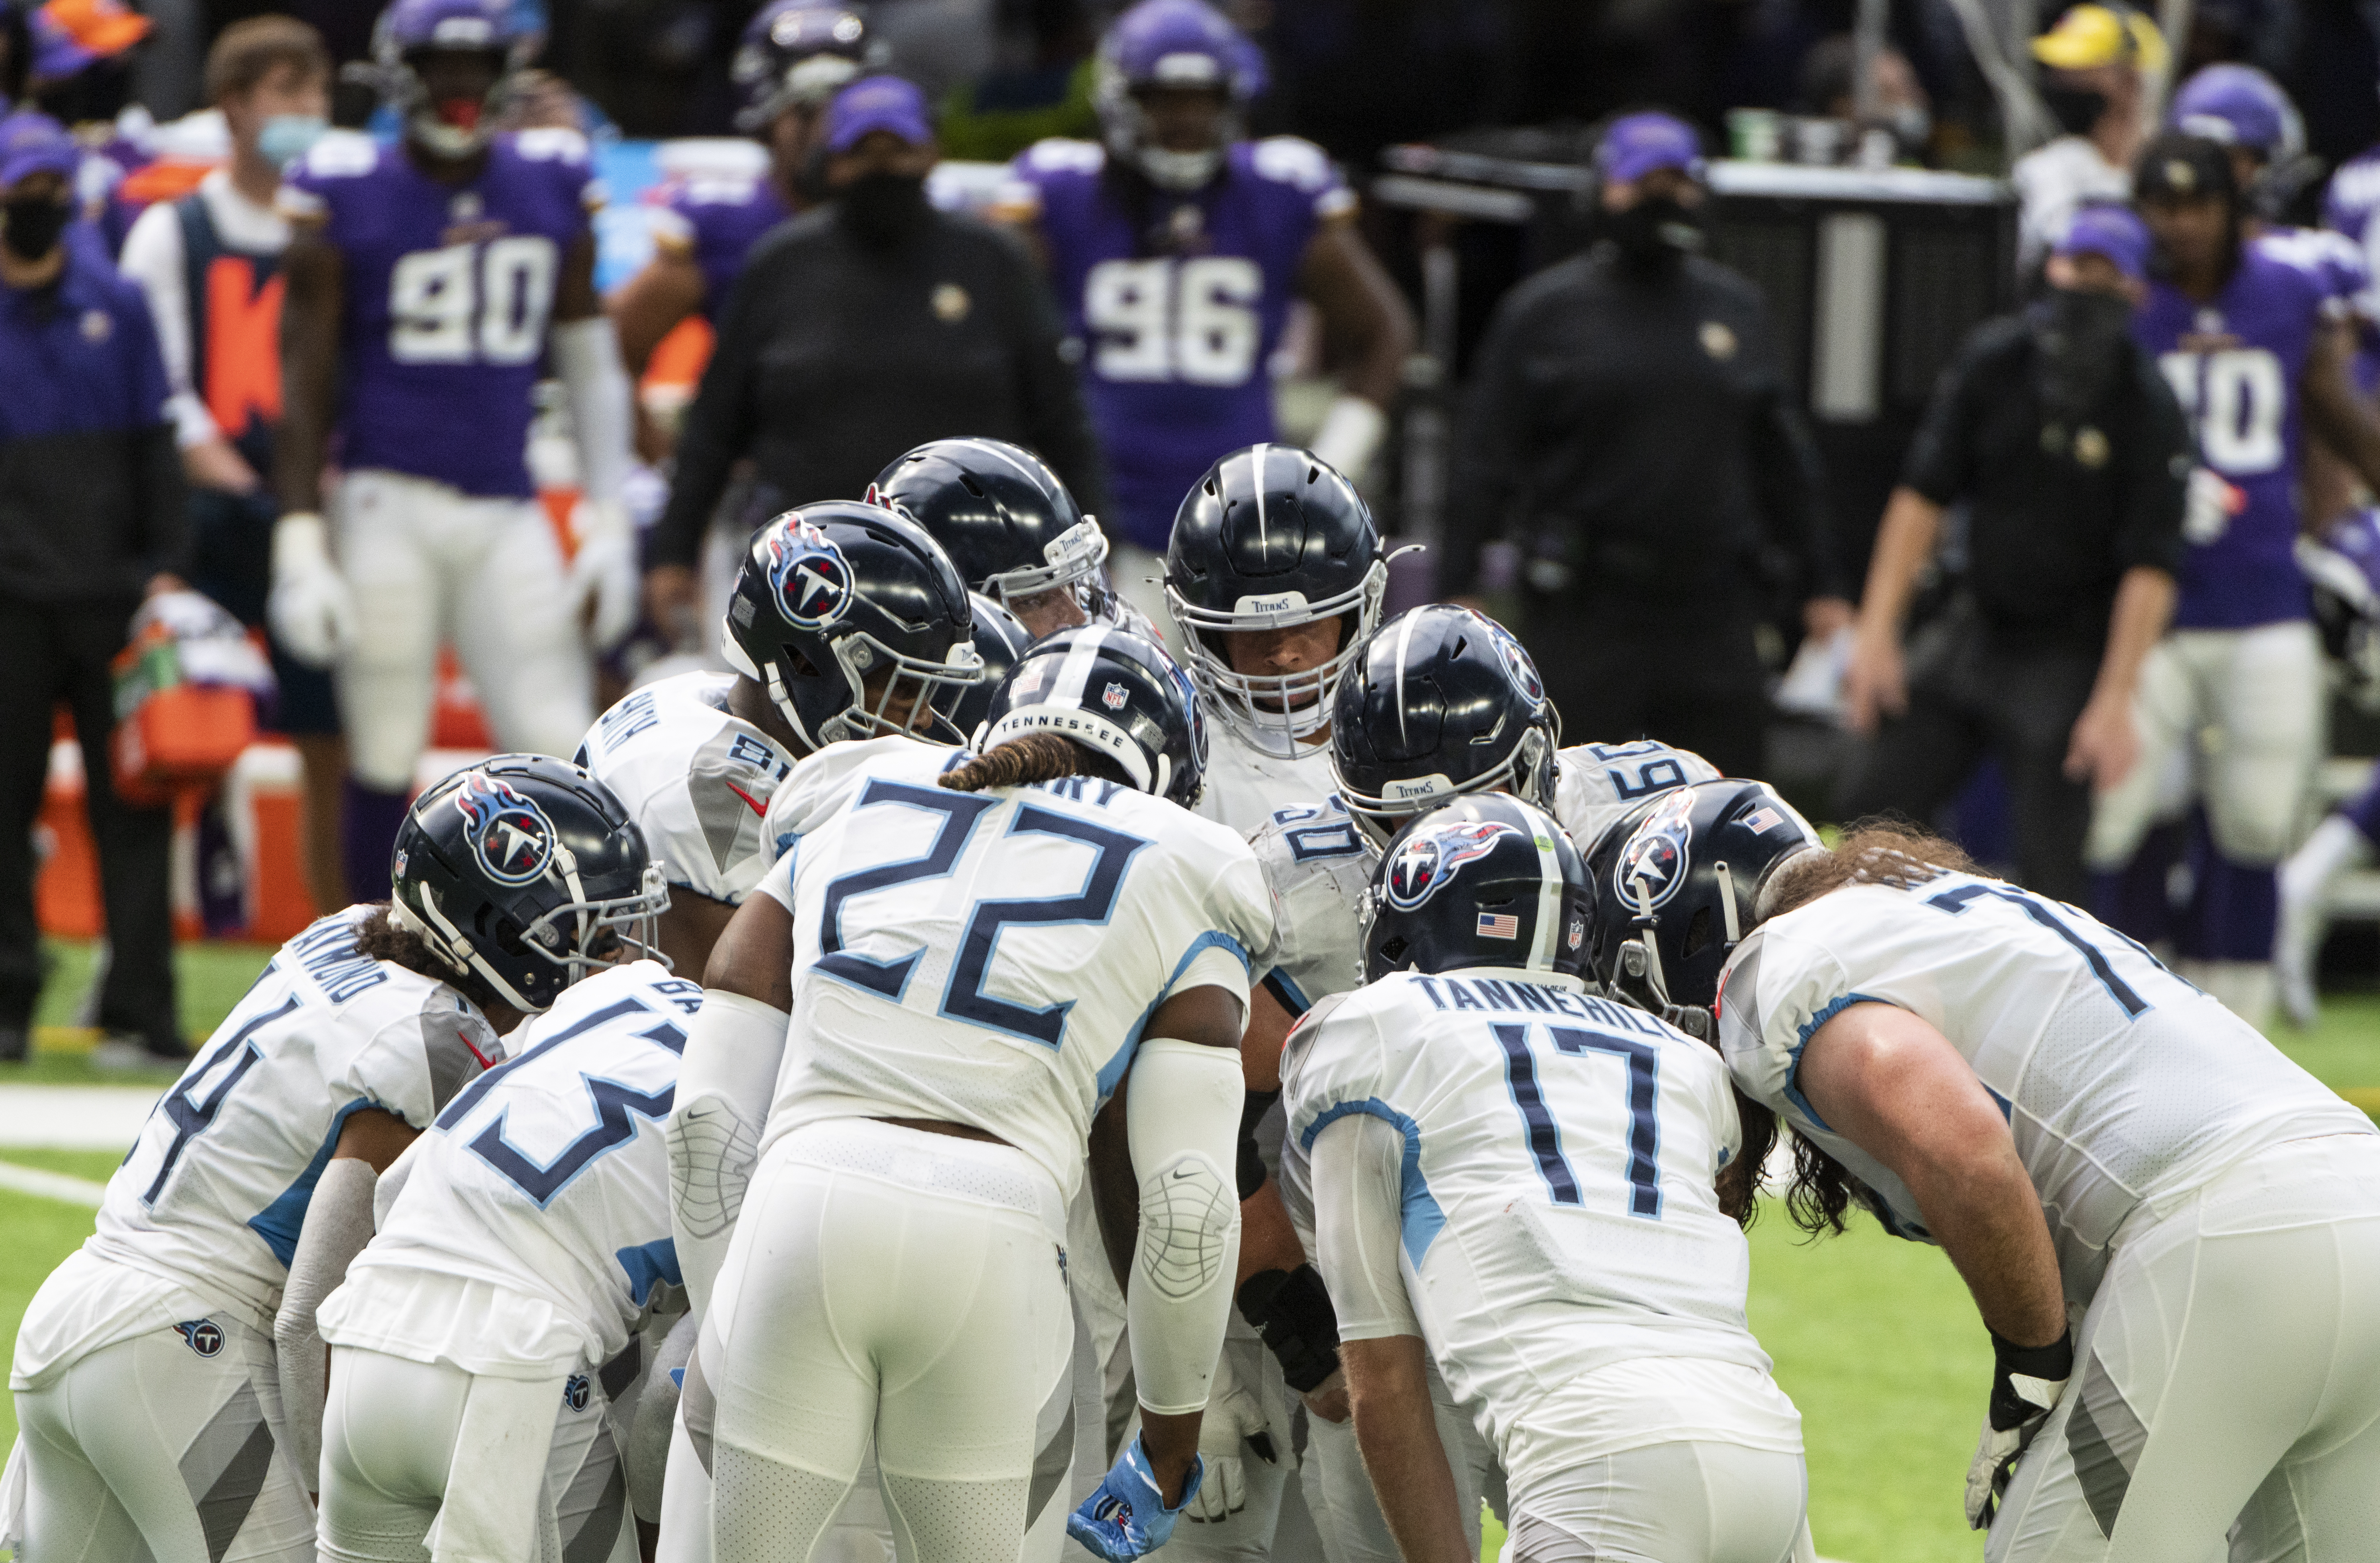 Nfl Two More Titans Test Positive For Covid 19 Per Report